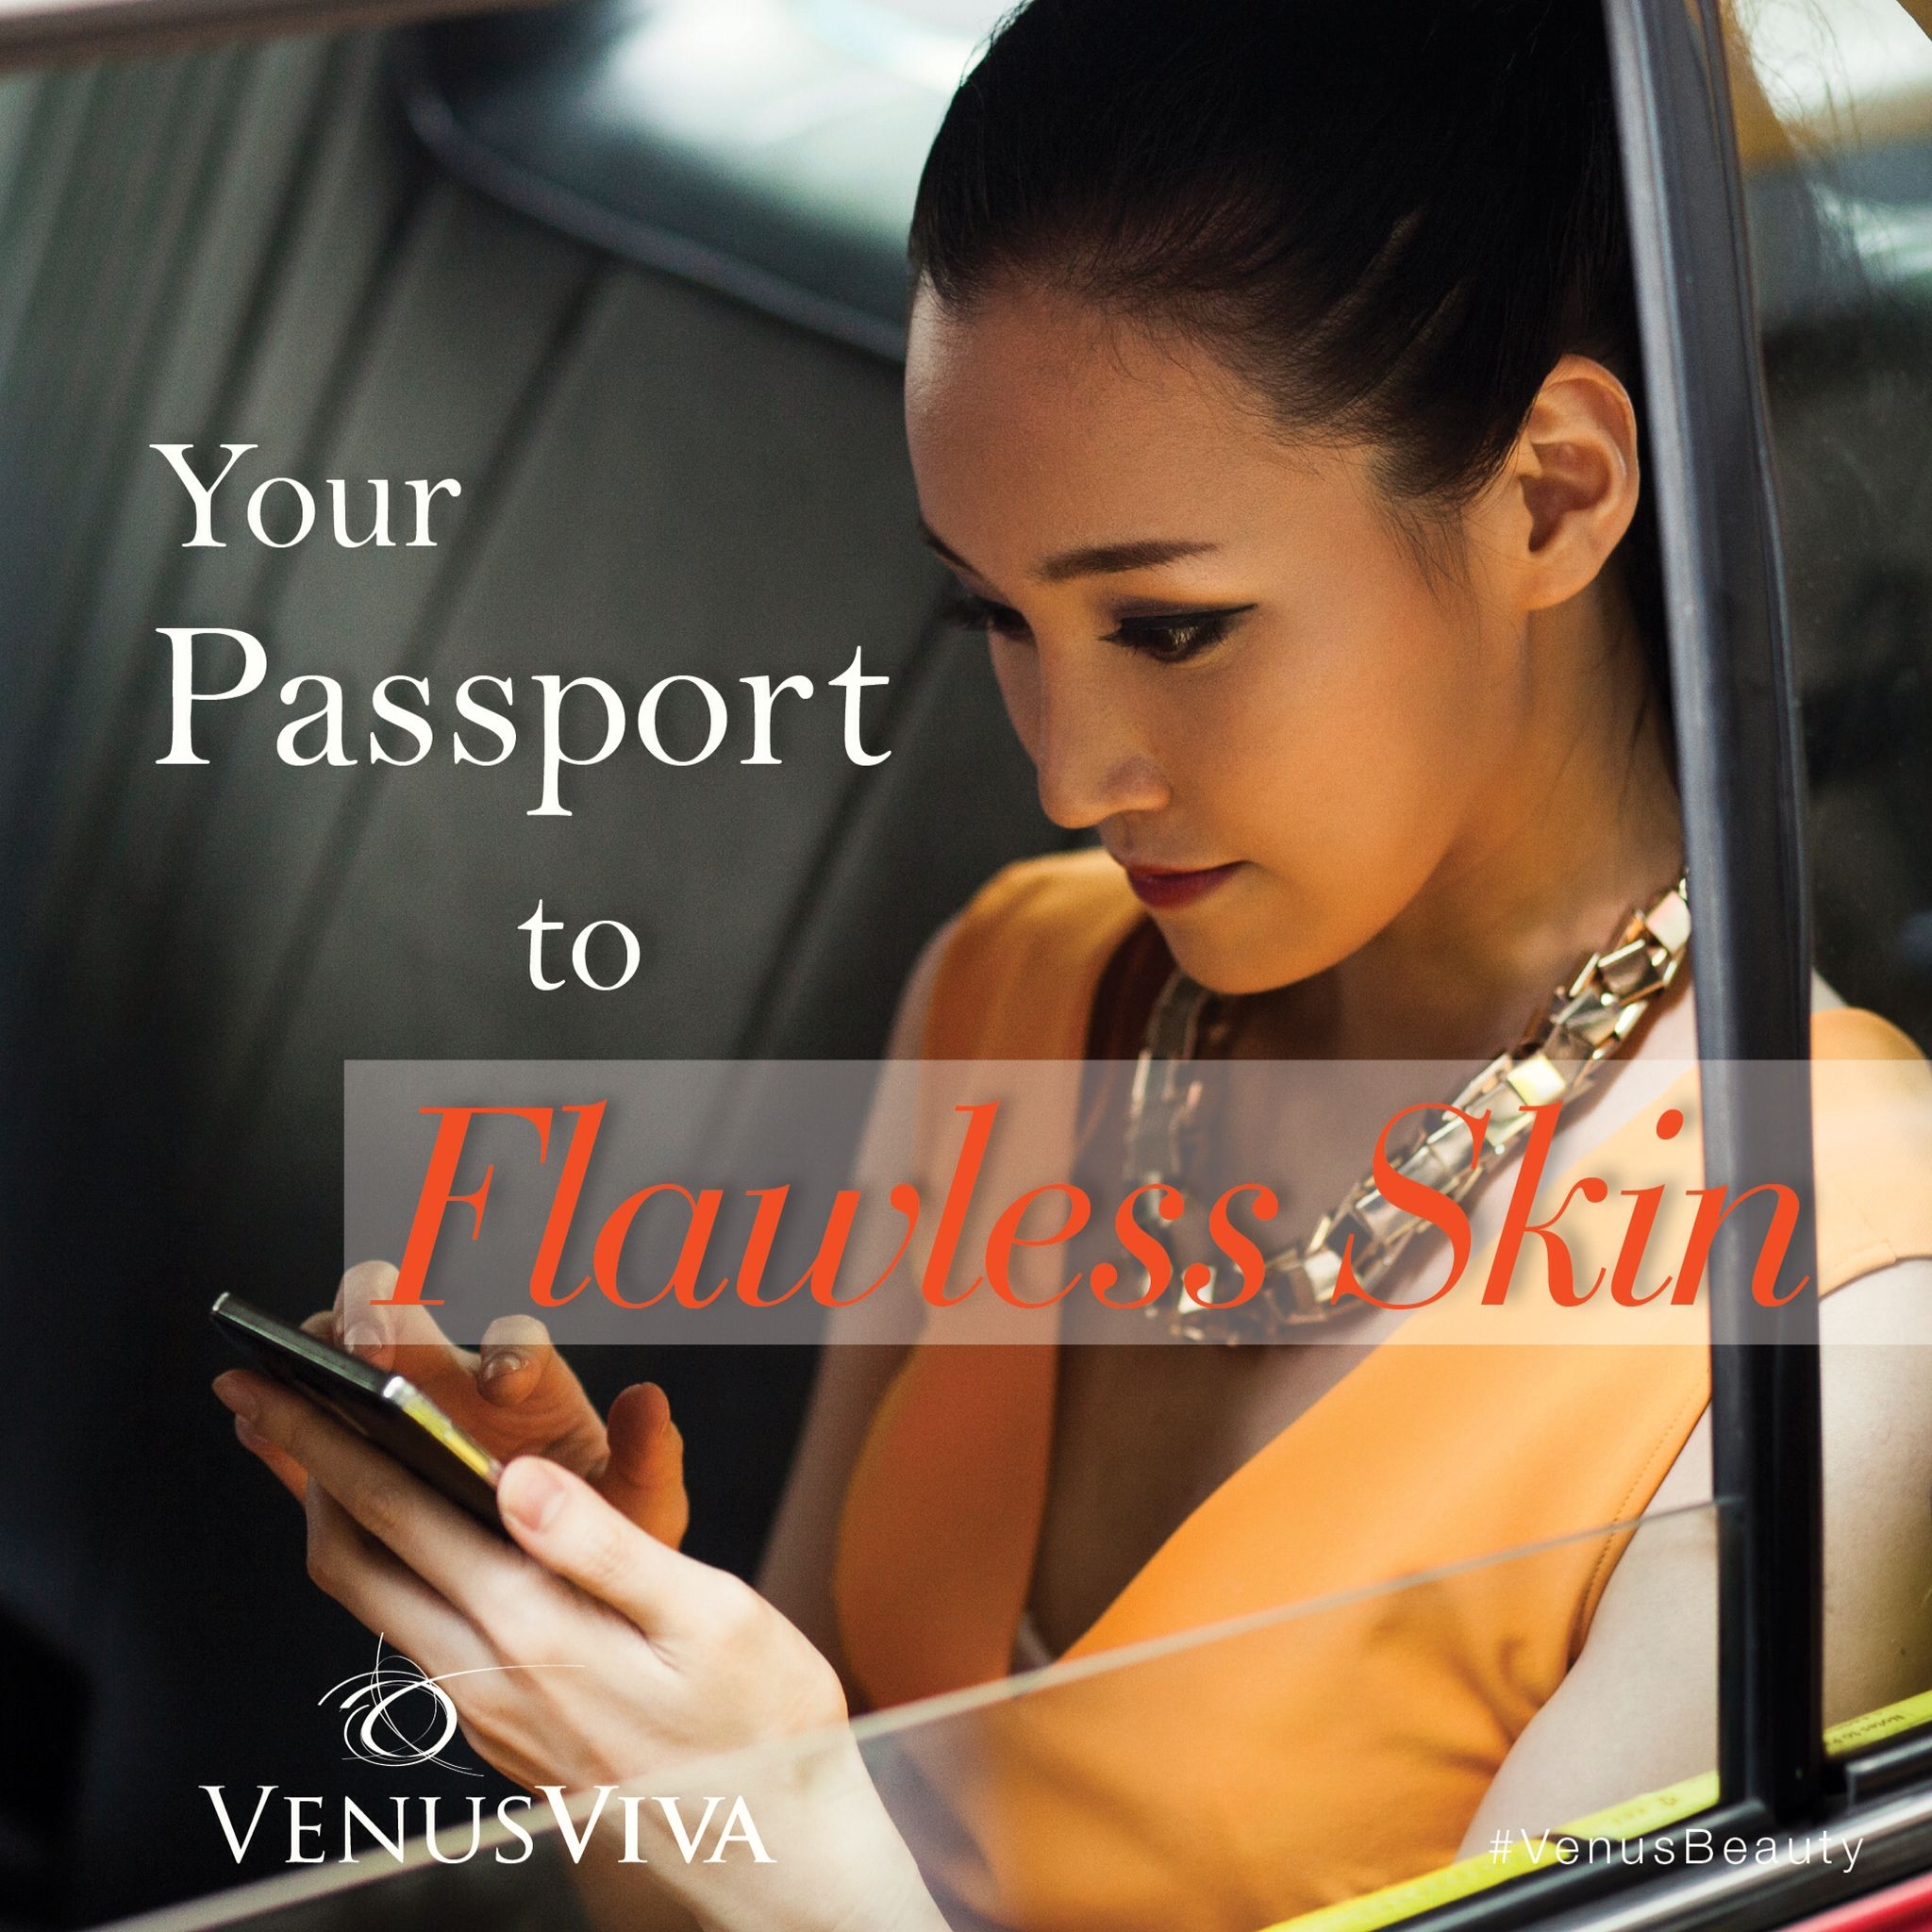 Your Passport to Flawless Skin is now effortless with the